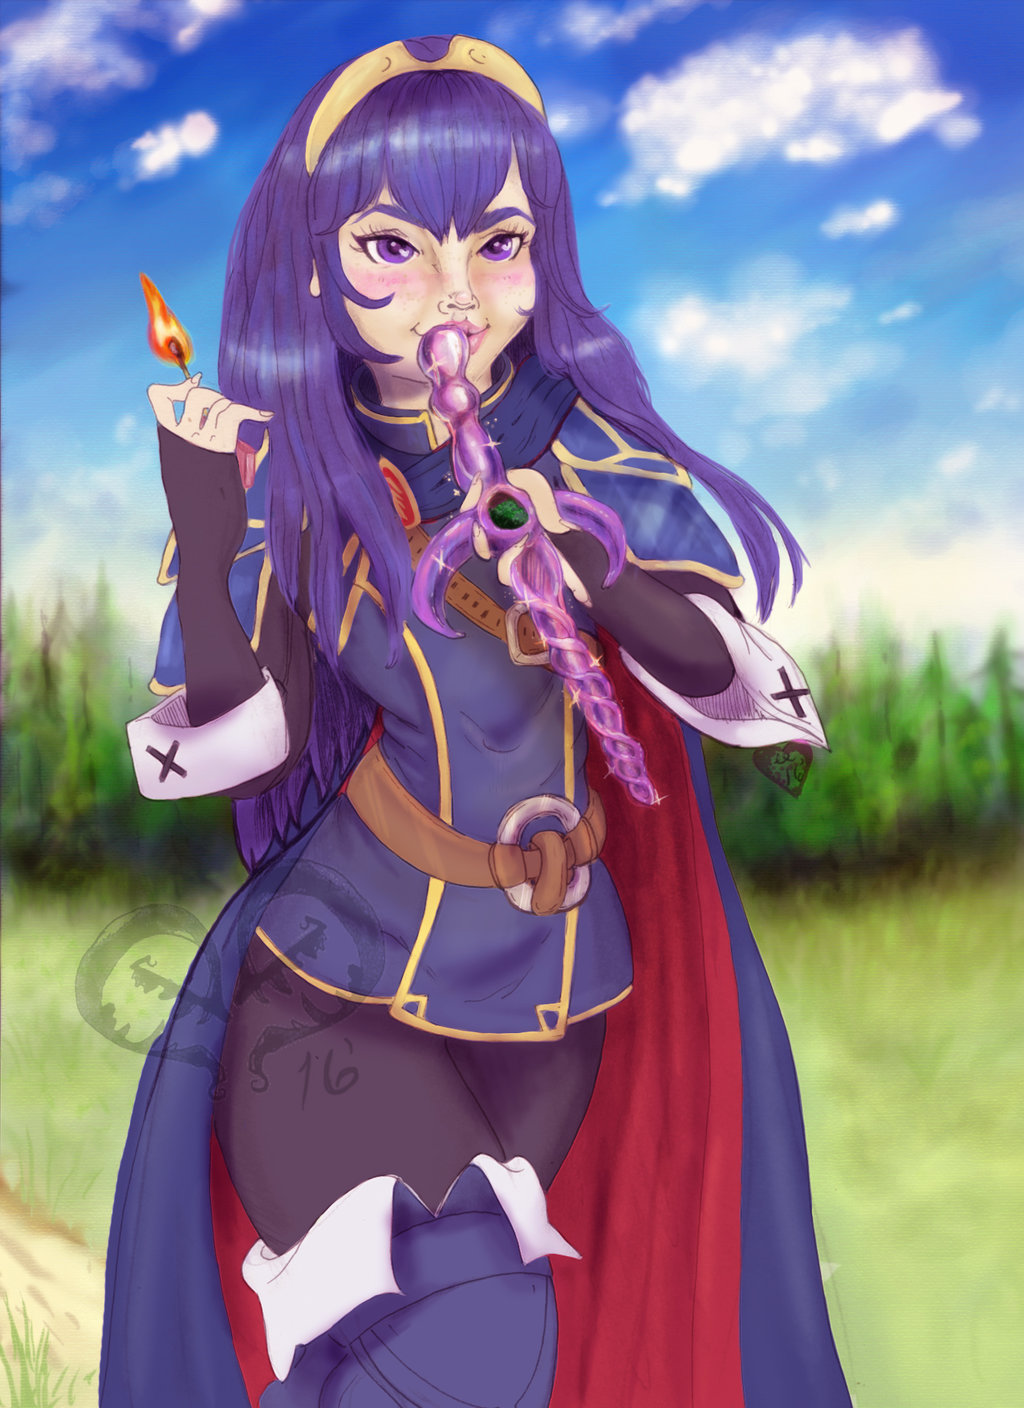 Most recent image: Blaze Up Smash: Princess Lucina